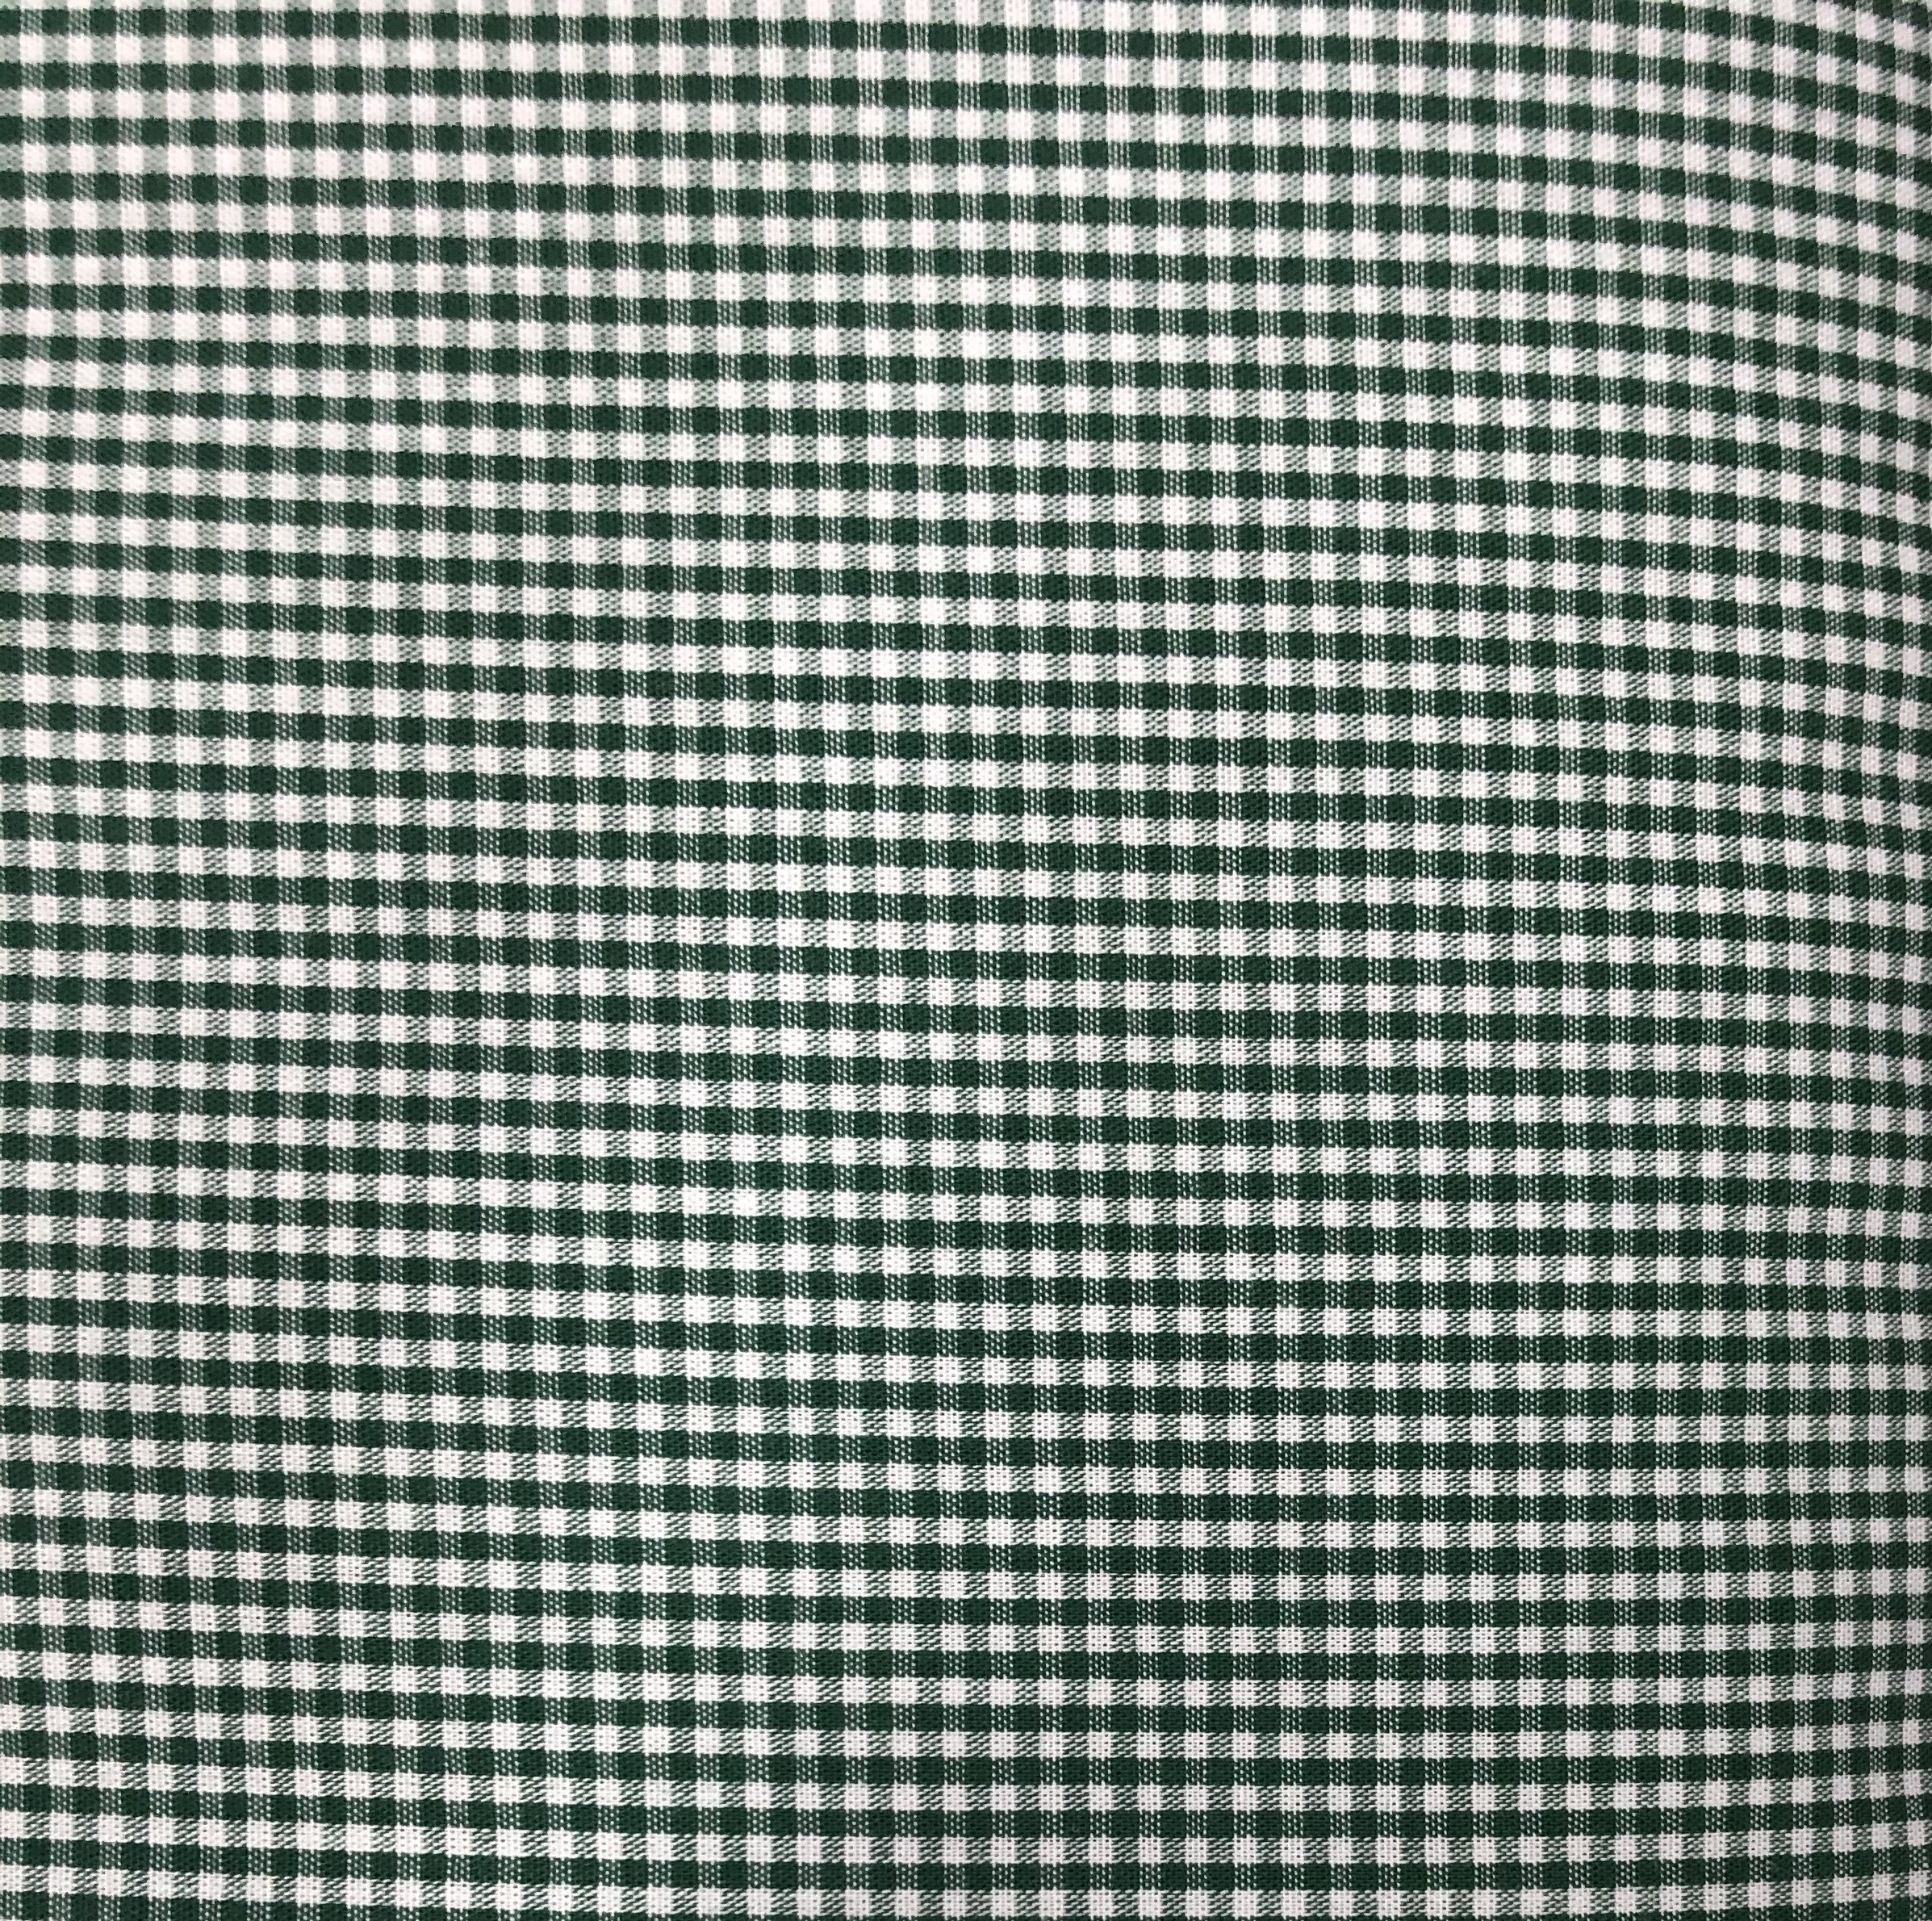 Buy tailor made shirts online - Presidents Range (CLEARANCE) - GREEN GINGHAM CHECK